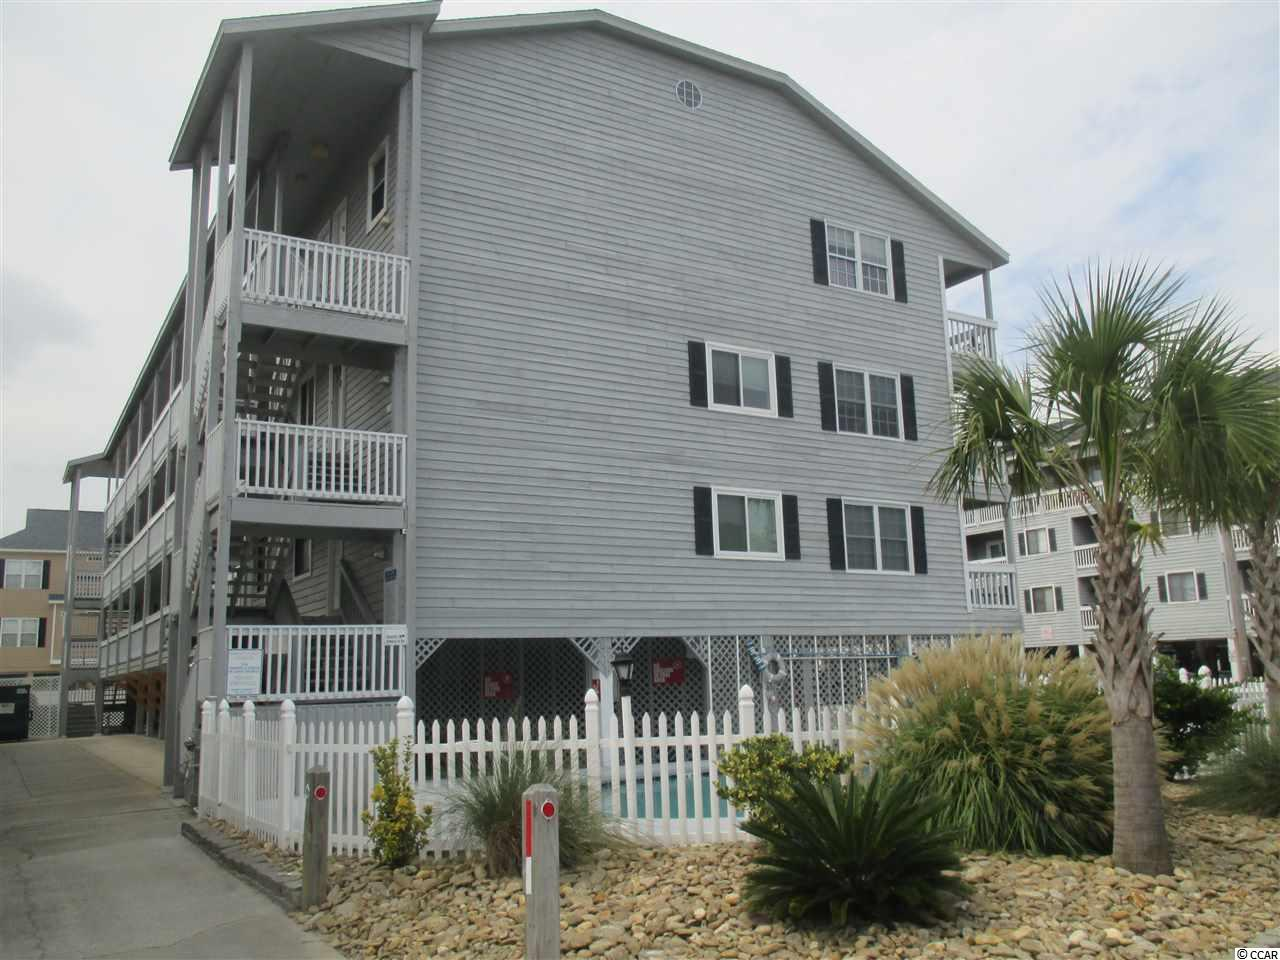 This 2 Bedroom 2 Bath re-modeled condo has fantastic views of the Atlantic Ocean from the deck, living area, and master bedroom. Condo 301 is a top floor end unit in the best location at the Sandy Shores I building and features : Stainless Steel Appliances, Cherry Cabinets, Double Sink, Stove Top Burners, Fisher Paykel Dishwasher, Granite Counter Tops  and Tiled Back Splash. The down stairs second bedroom's bath has an extra deep tub with a European Shower Head. The upstairs master bedroom has beautiful Wood Flooring, Port Hole Window with a view of the ocean, Glass Block Shower and Extra Storage. Amenities at Sandy Shores I are a Pool, Covered Parking and Outside Storage. The  HOA includes : Insurance, Cable TV, Water, and Trash Pick Up. This condo is the perfect second home, family vacation destination, winter retreat, investment with great rental income or full time retirement home. Call your Realtor immediately!! This is the chance of a lifetime to own a two bedroom two bath condo at THE BEACH.